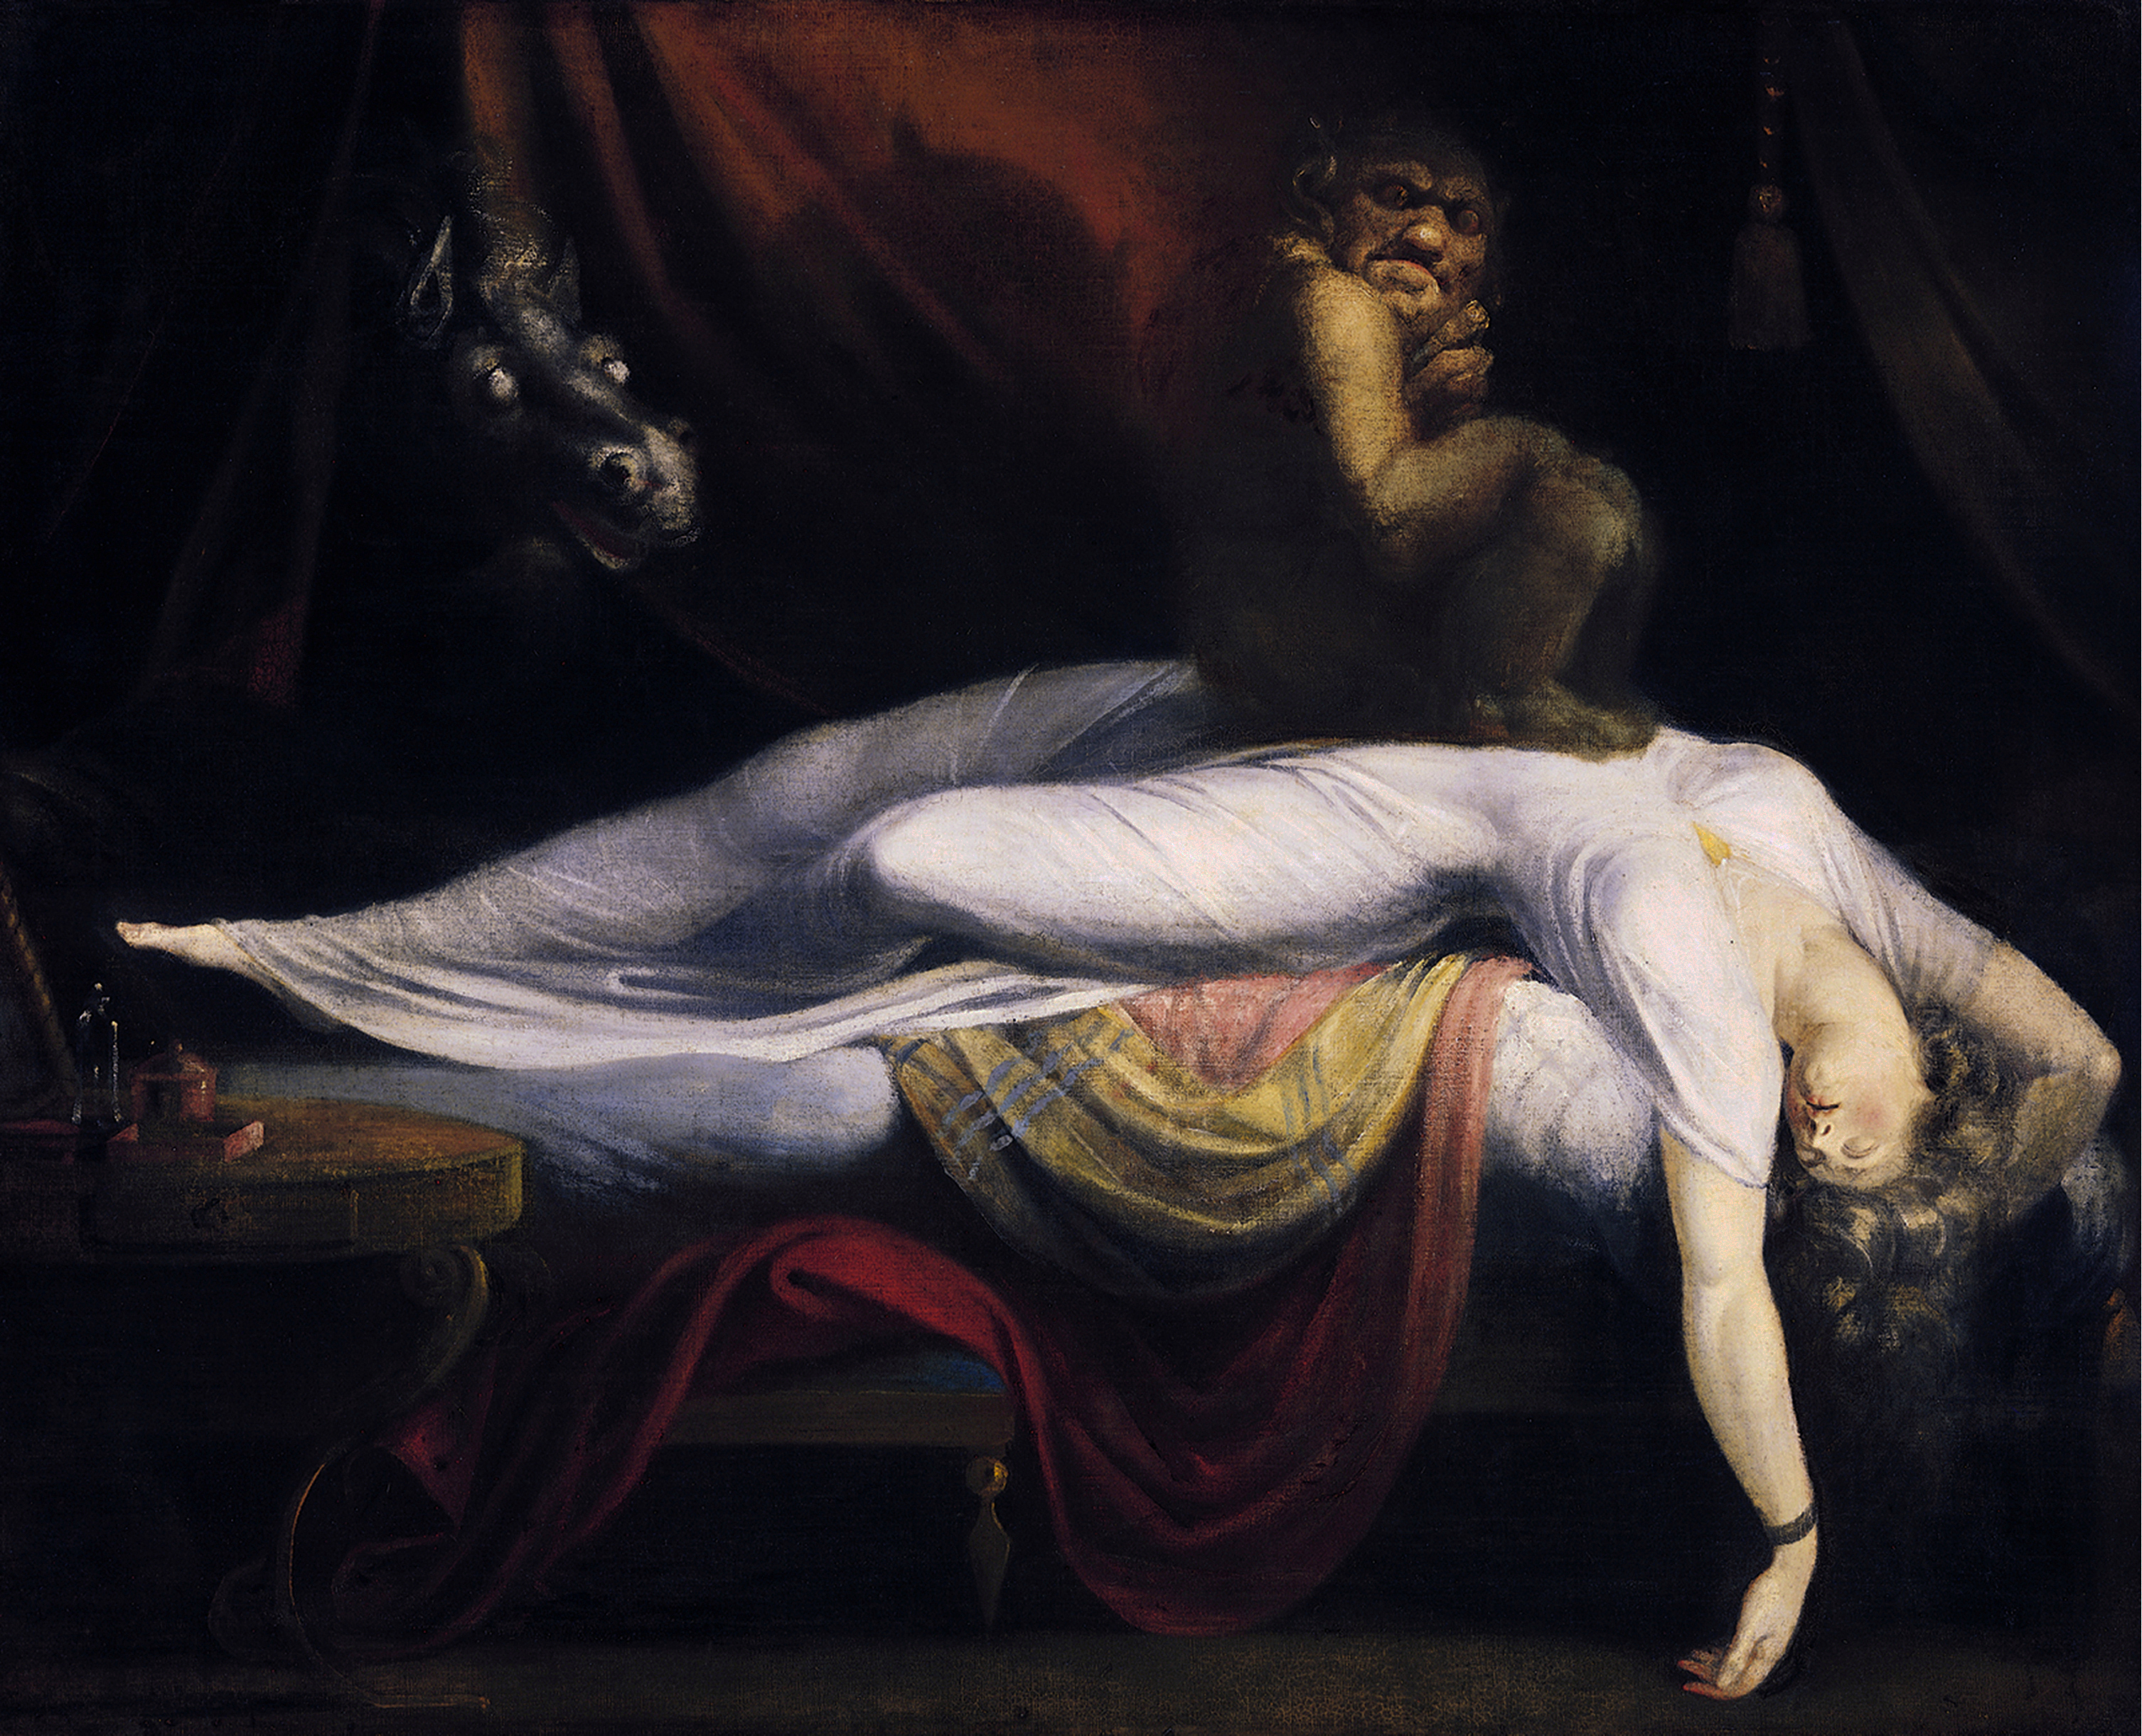 Image: Sleep paralysis – more common than you might think